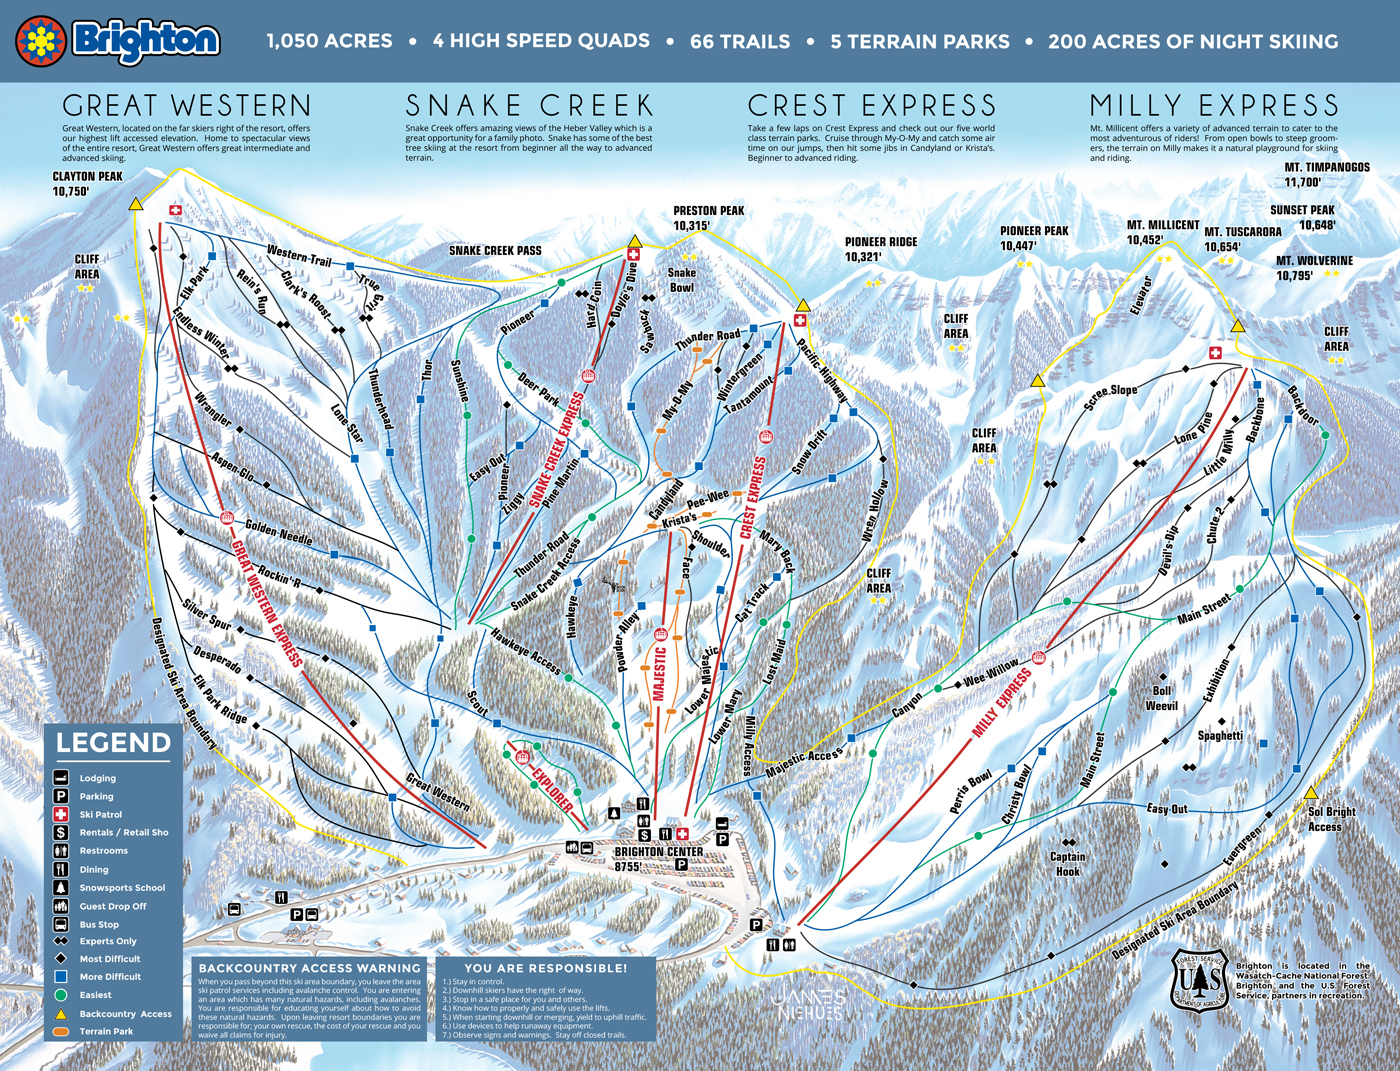 Brighton Resort Trail Map | OnTheSnow on map utah salt lake city skiing, map of utah and surrounding attractions, map of ny ski areas southern, salt lake utah ski resorts, map of lake tahoe ski resorts,